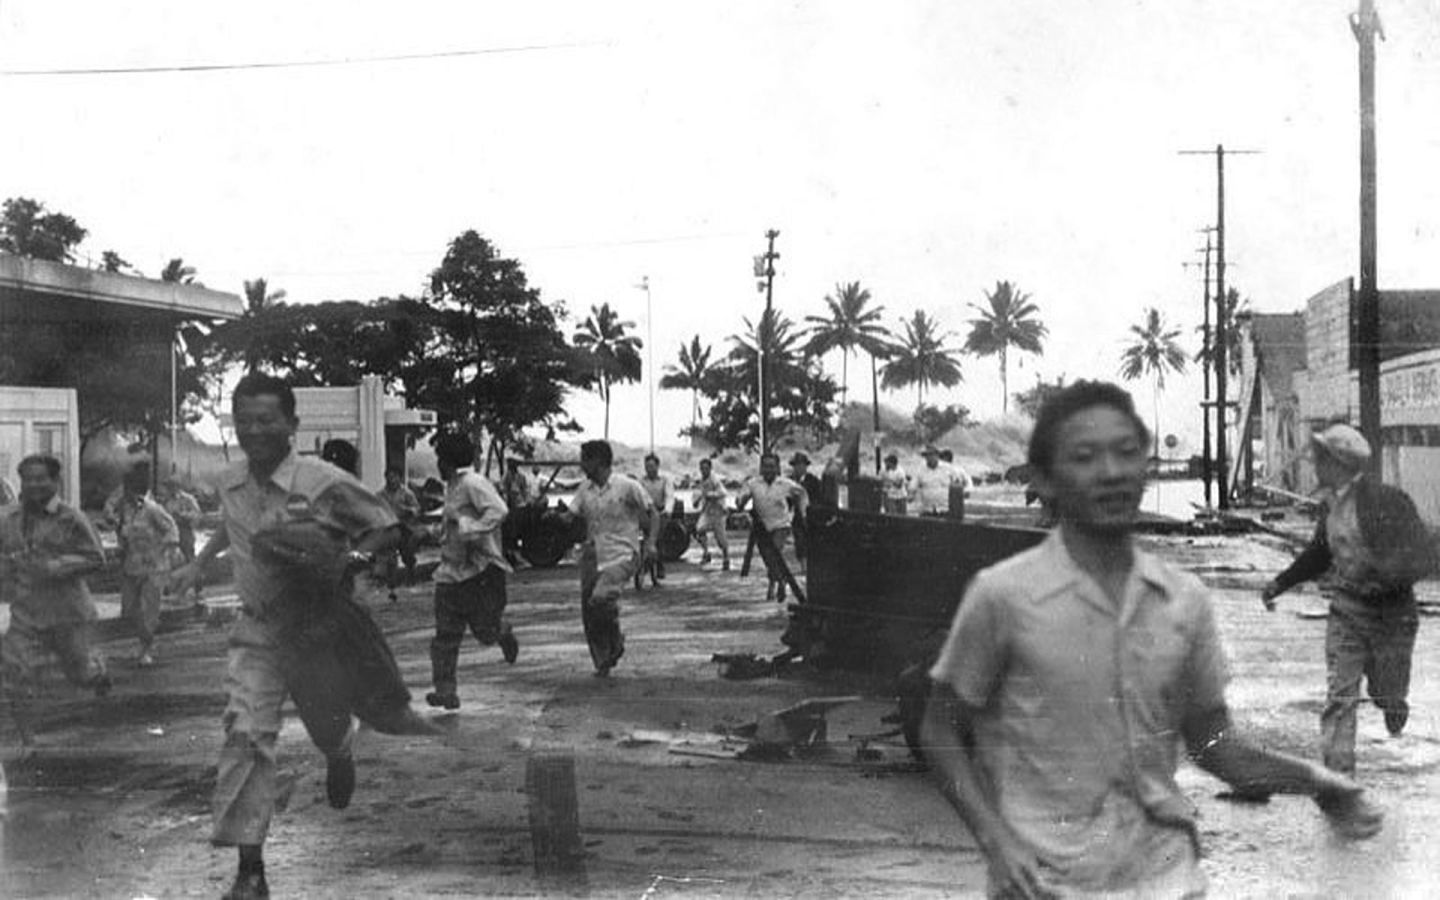 People run from an approaching tsunami in Hilo, Hawaii on April 1, 1946. The same tsunami hit Central California, and was generated by a fault rupture near the Aleutian Islands.